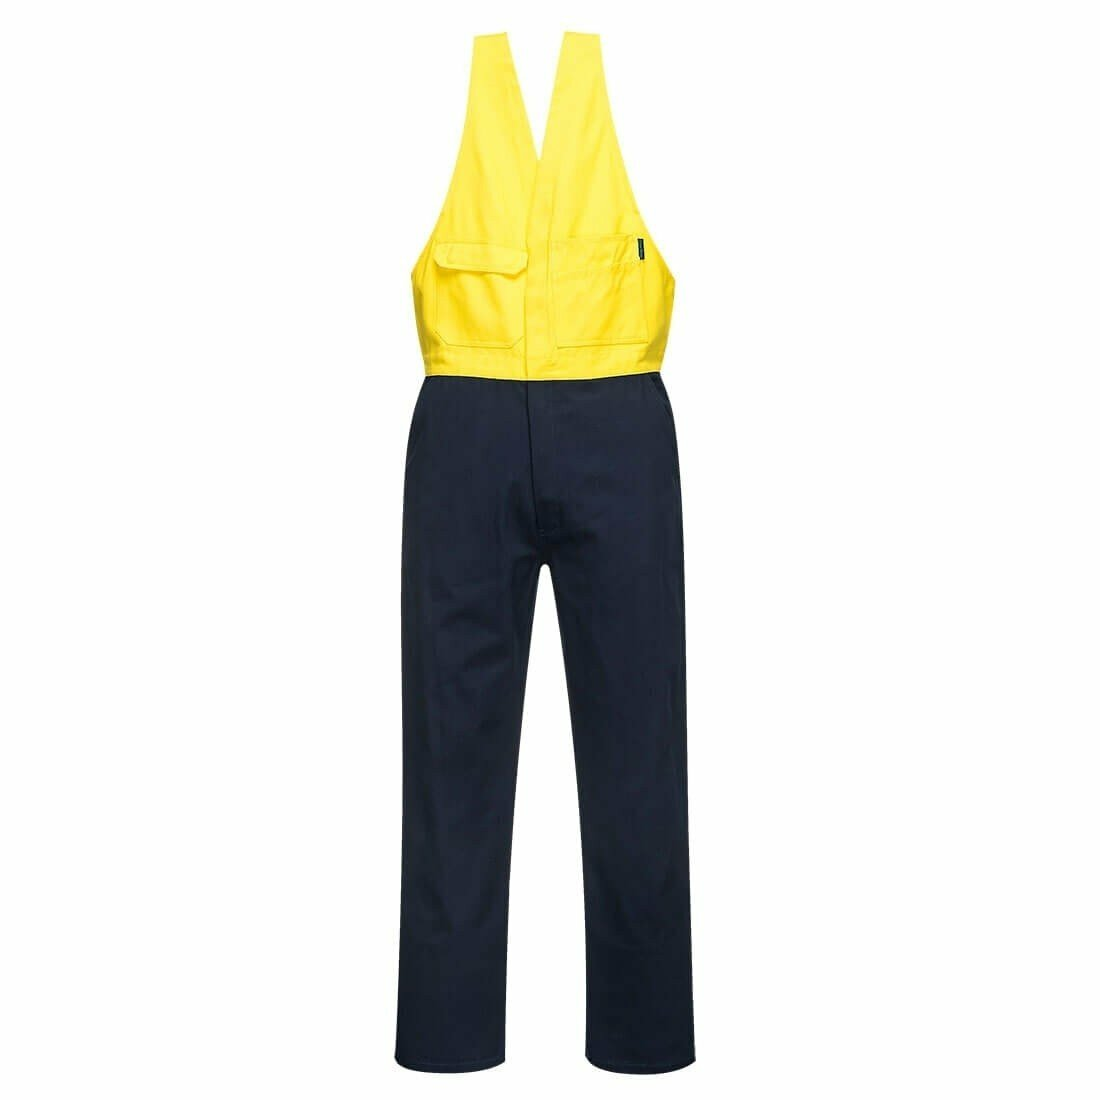 MW311 Regular Weight Action Back Overalls